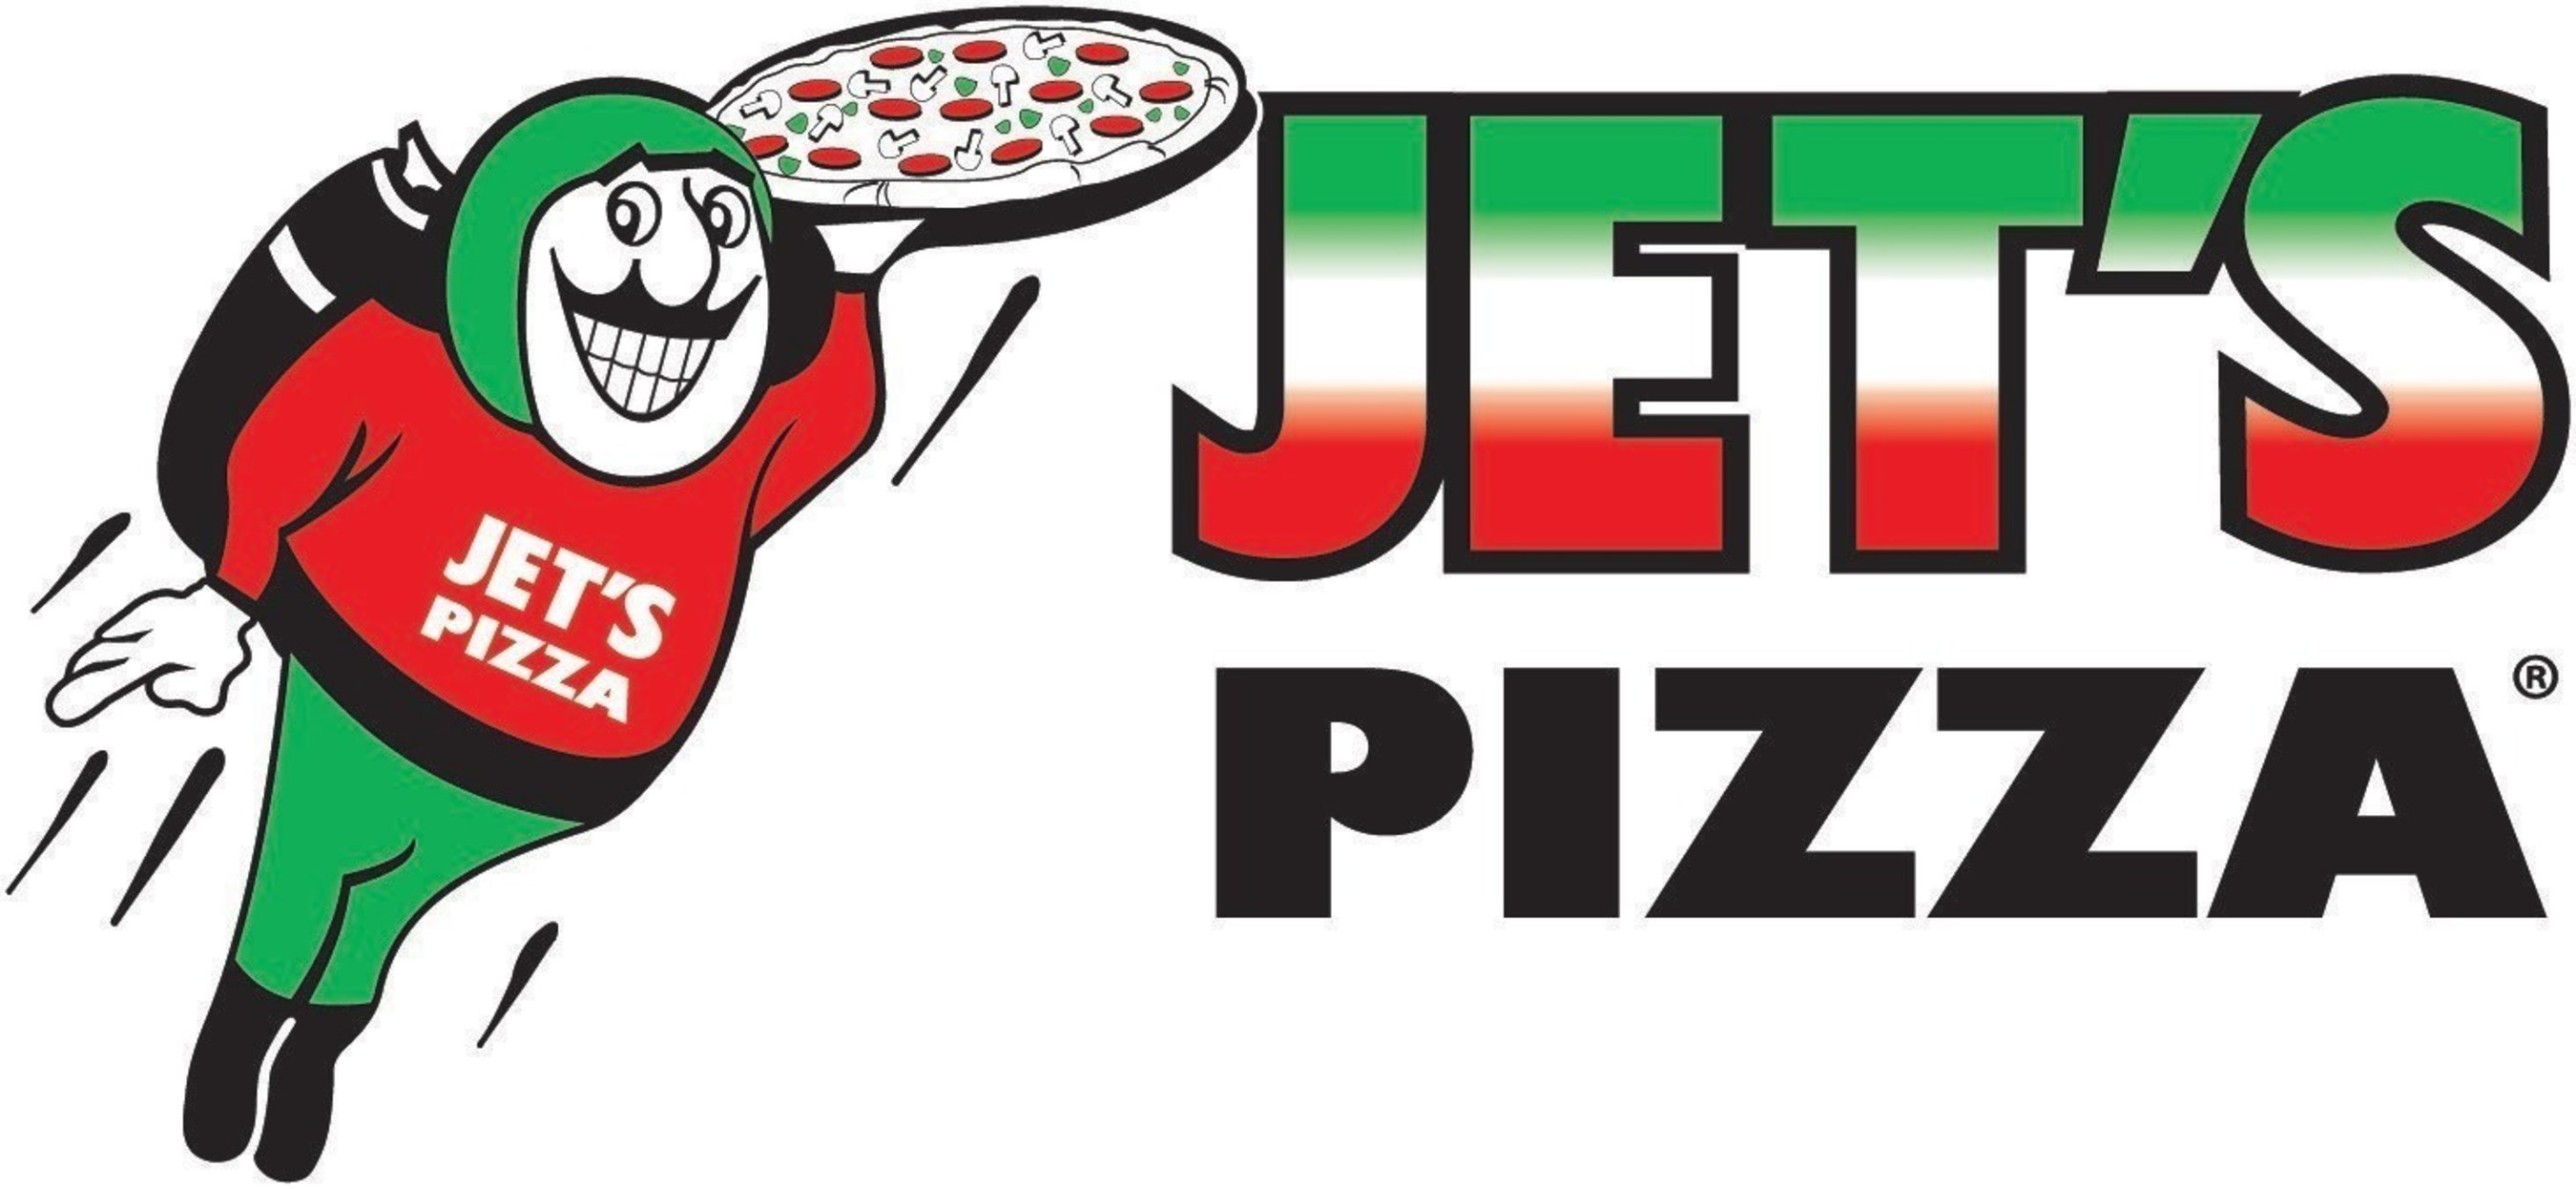 colorado reaches new heights with jet's pizza® grand opening